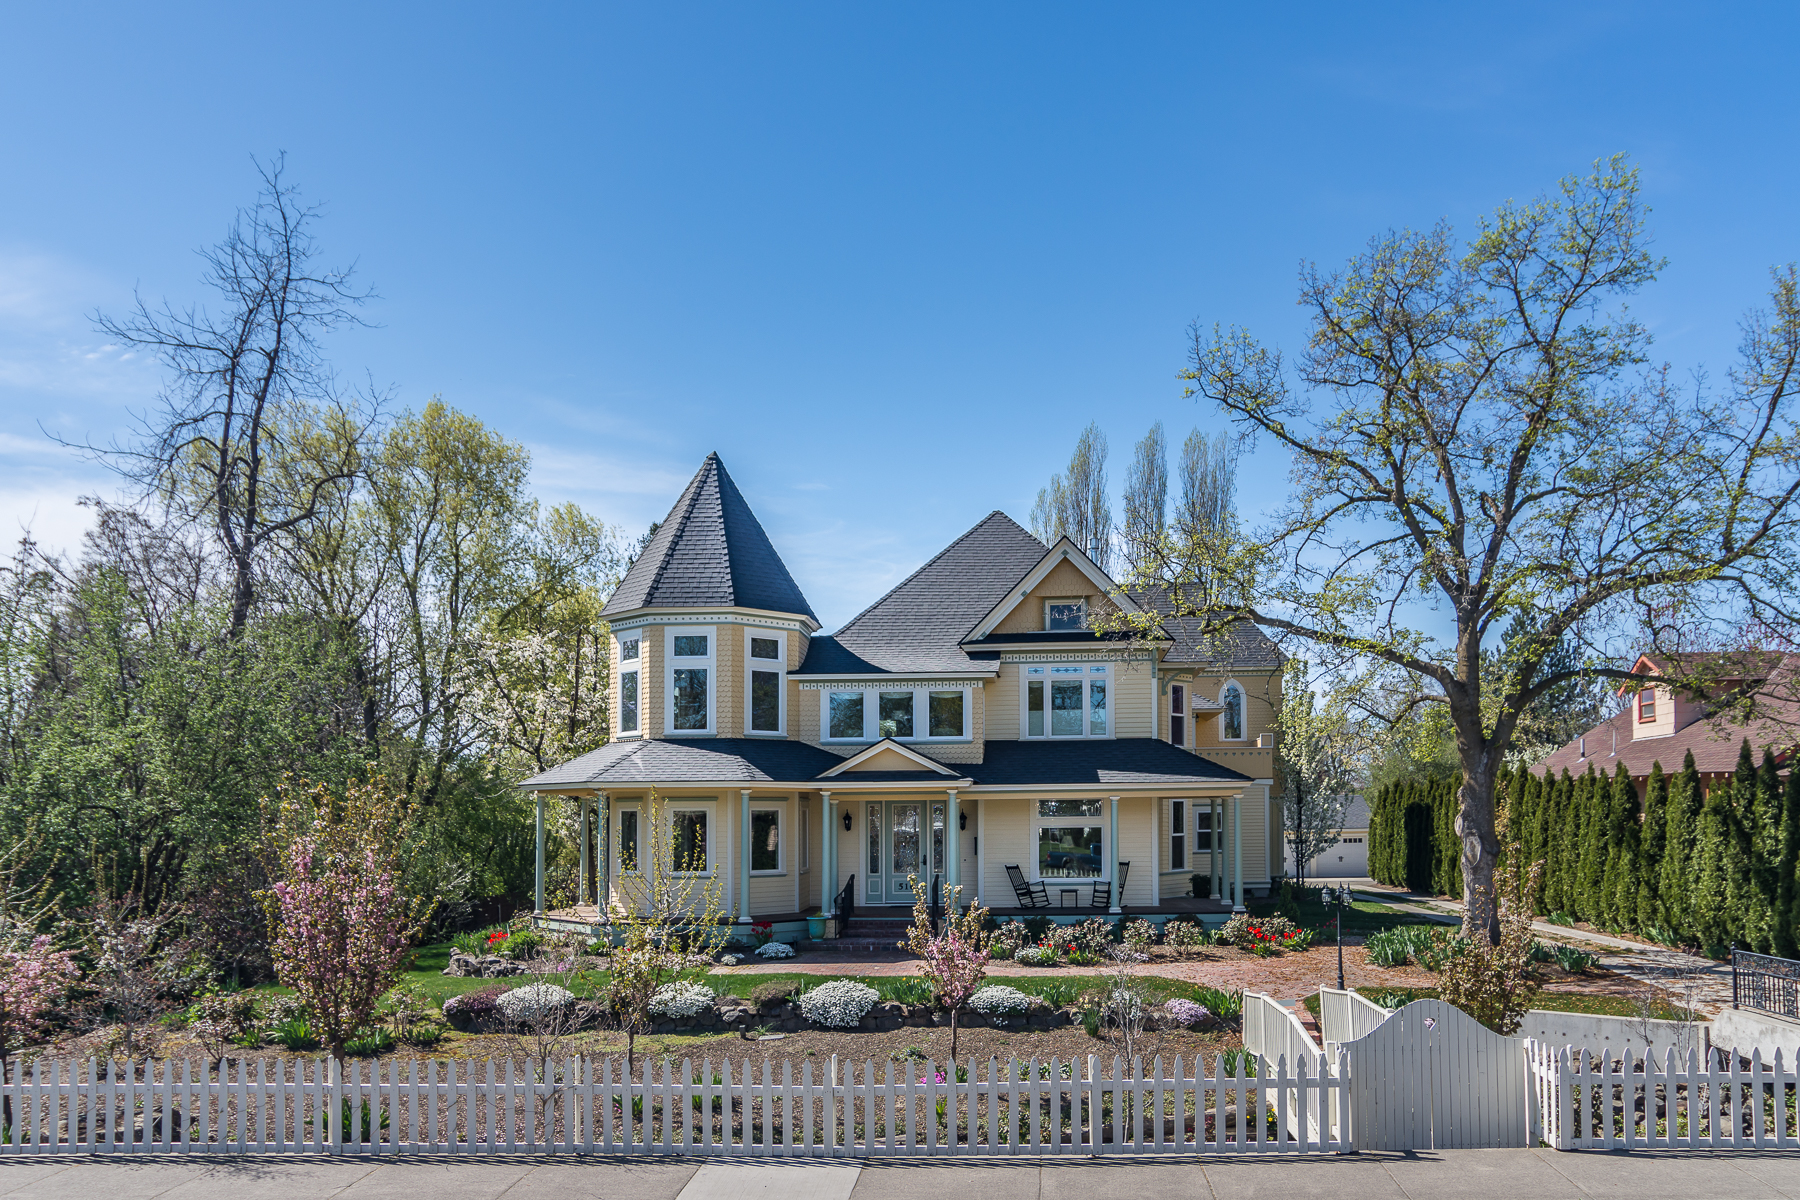 Single Family Homes for Sale at Custom Grand Victorian Mansion 516 S Division Street Walla Walla, Washington 99362 United States